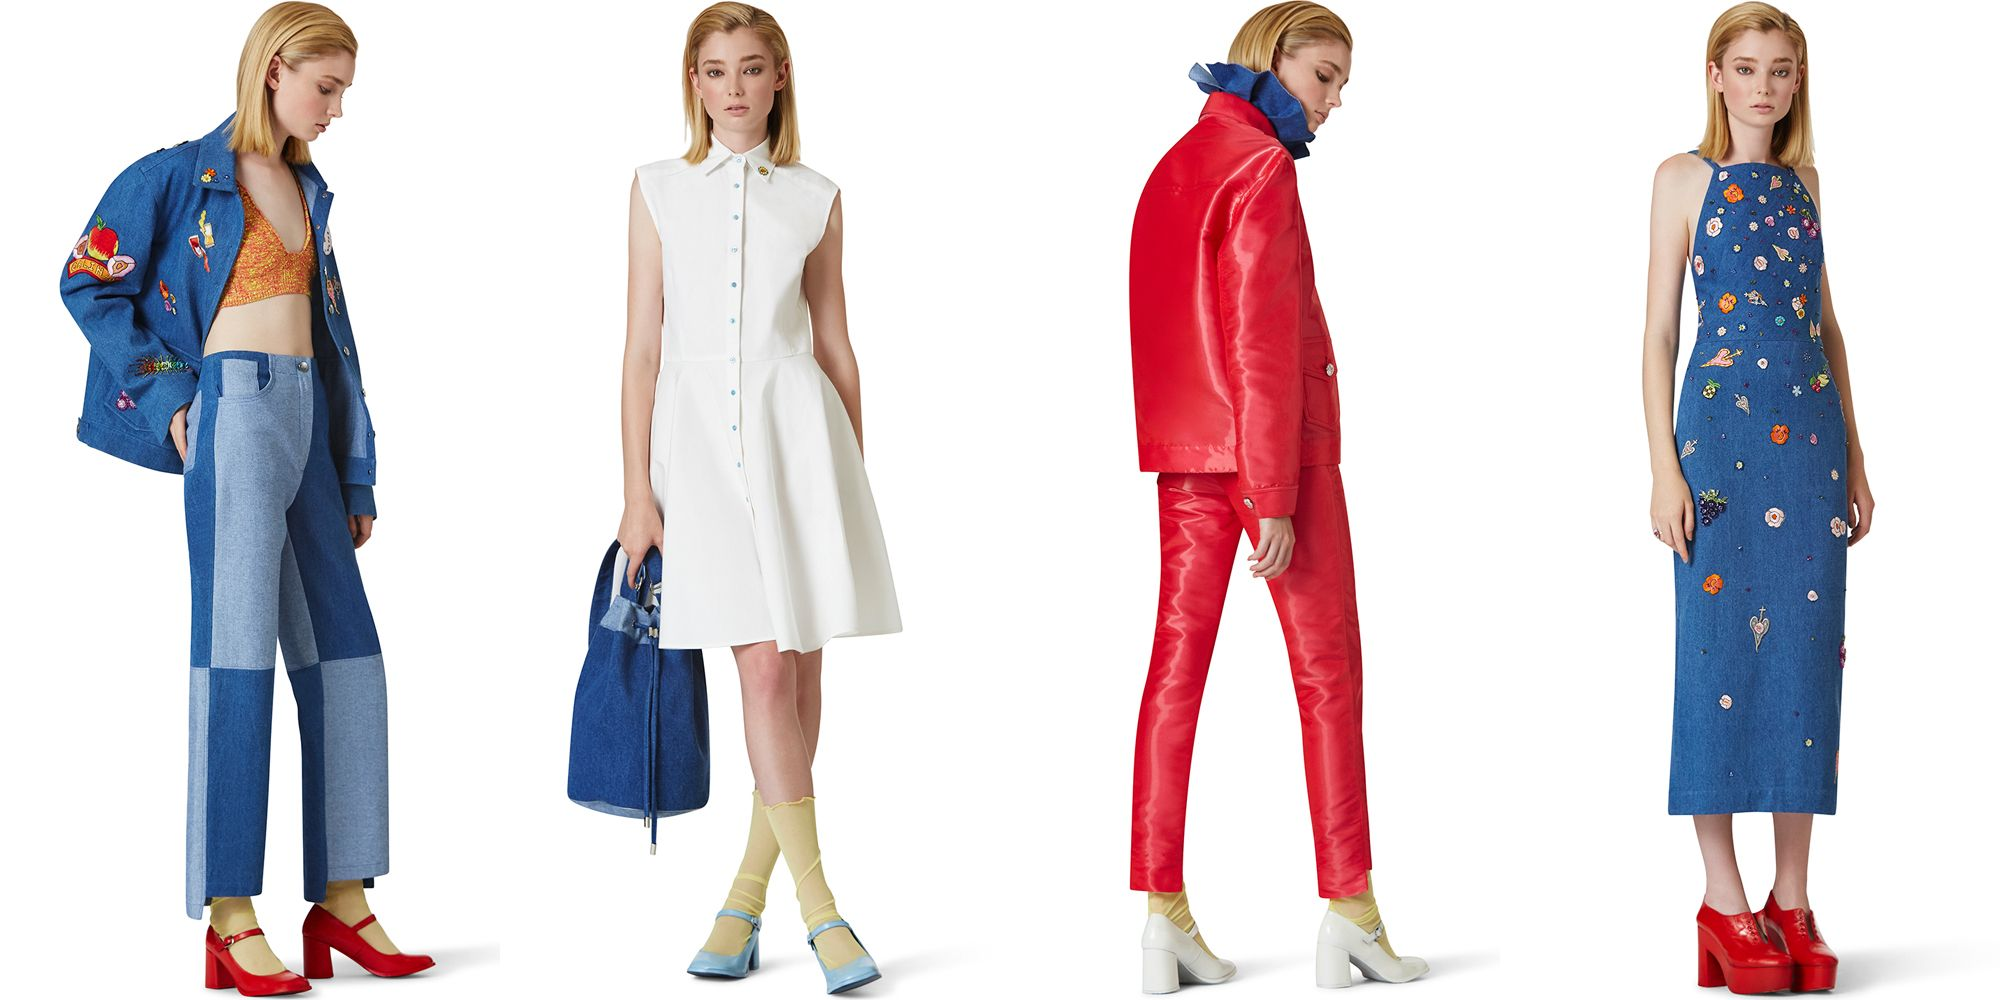 Fashion of the new season: truth is born in contradictions